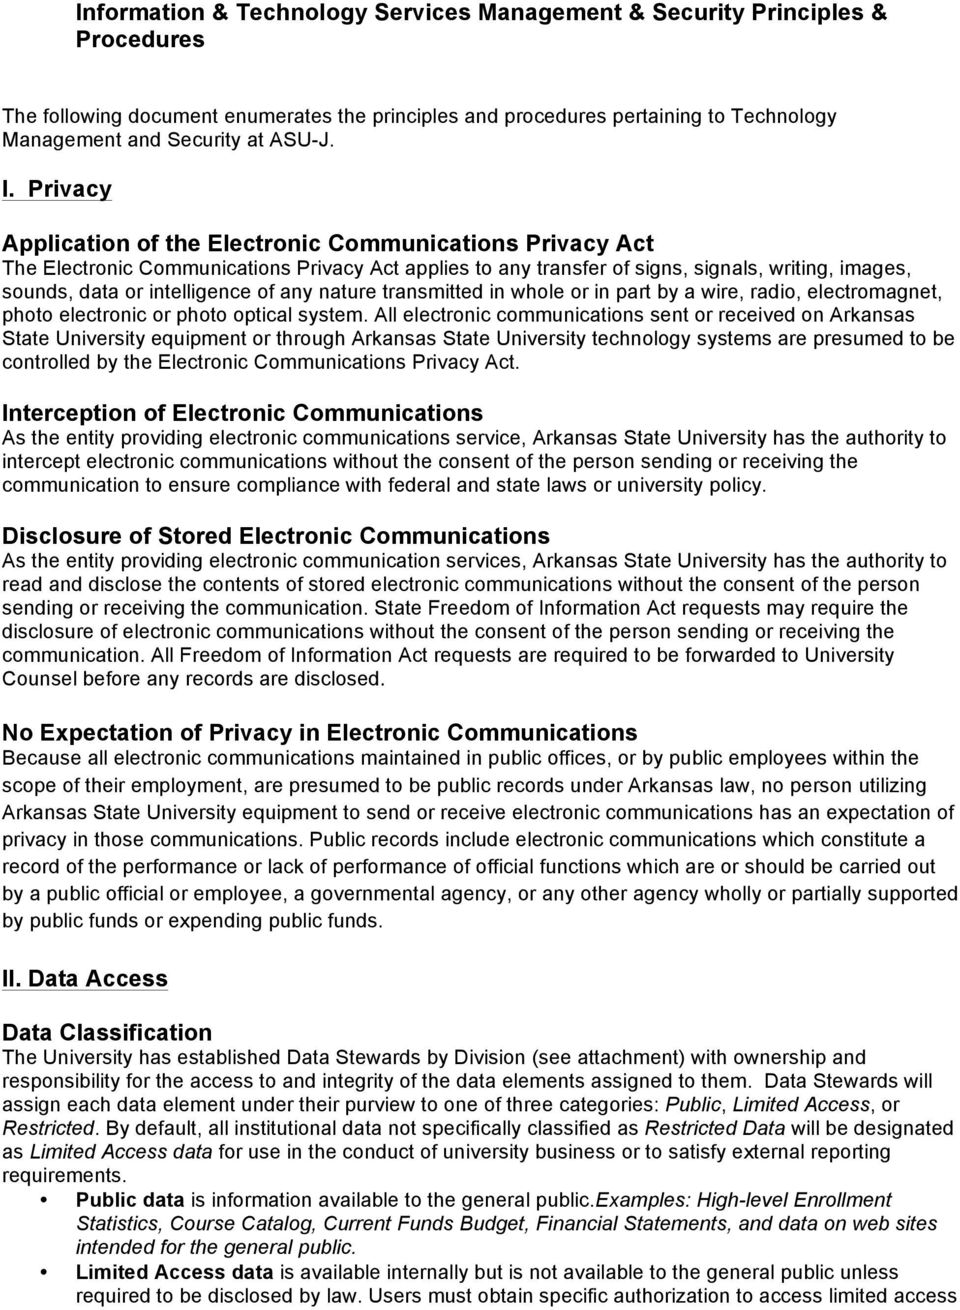 Privacy Application of the Electronic Communications Privacy Act The Electronic Communications Privacy Act applies to any transfer of signs, signals, writing, images, sounds, data or intelligence of